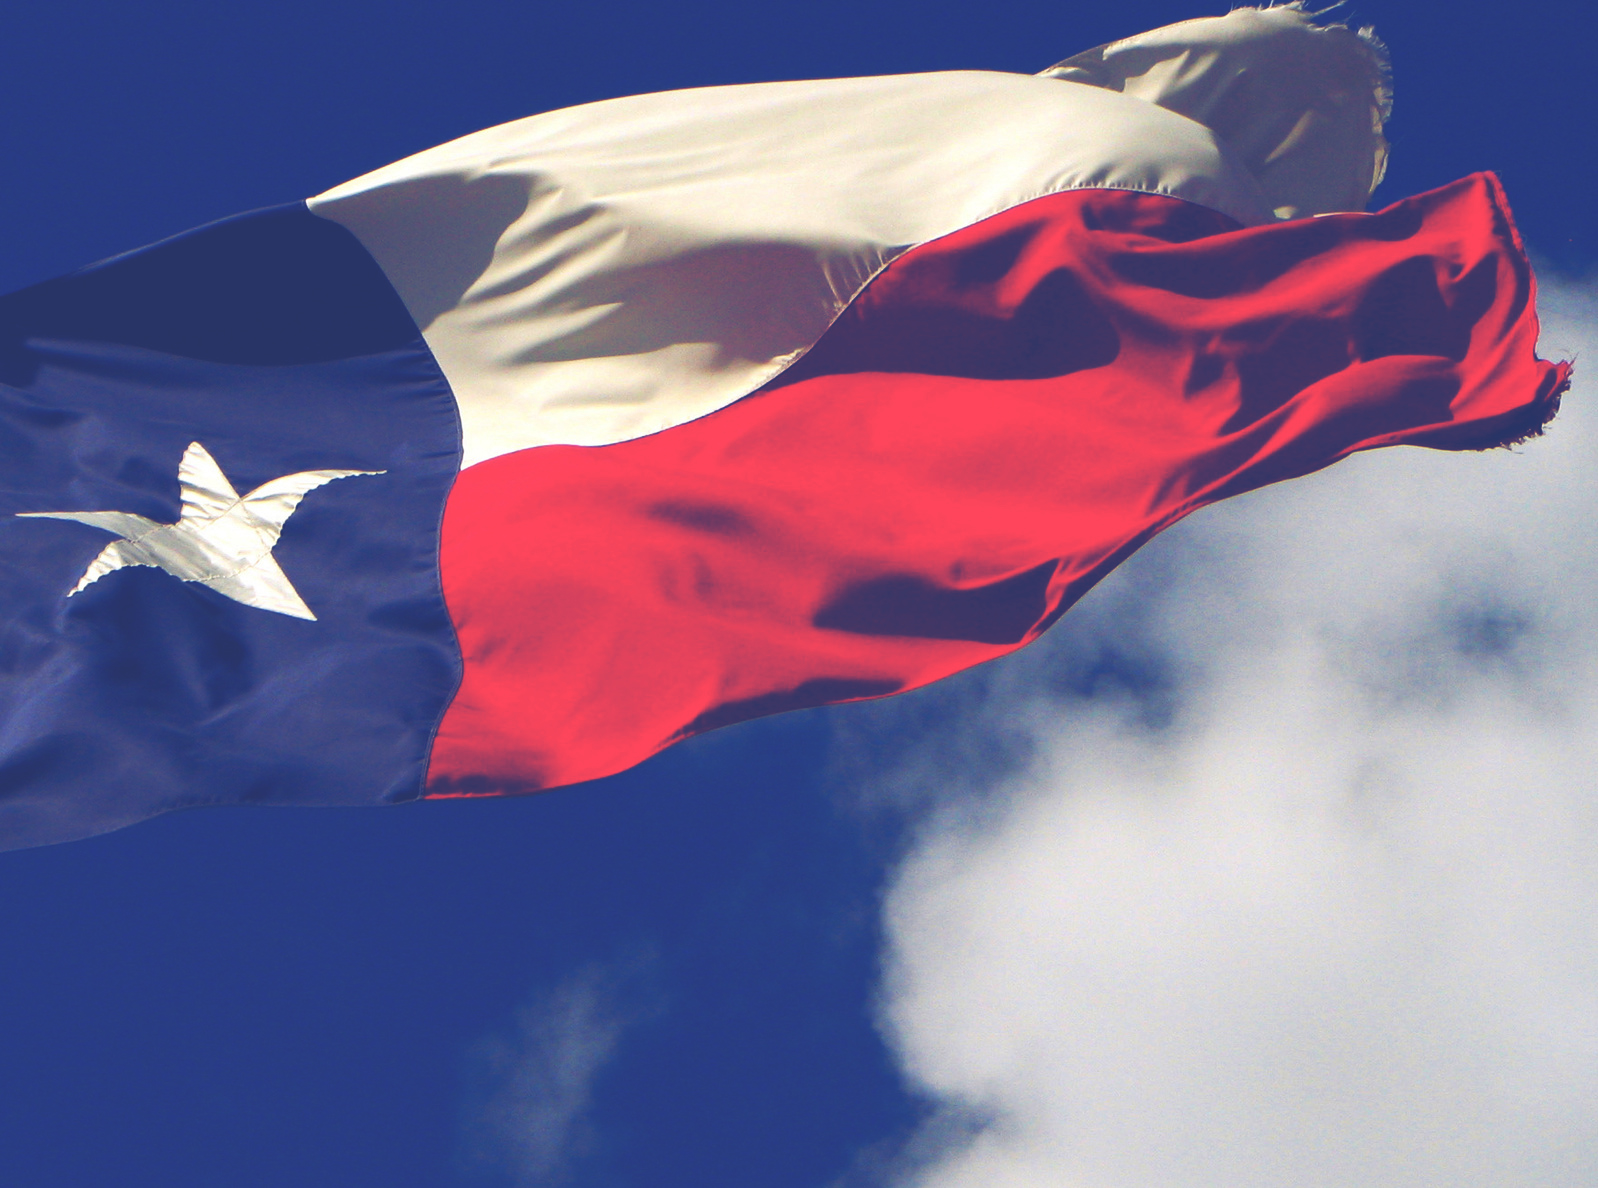 Texas Based - · We are proud Texans serving our neighbors with clean affordable renewable energy.· Texas has the most sun exposure in the nation, making your home a great candidate for solar energy.